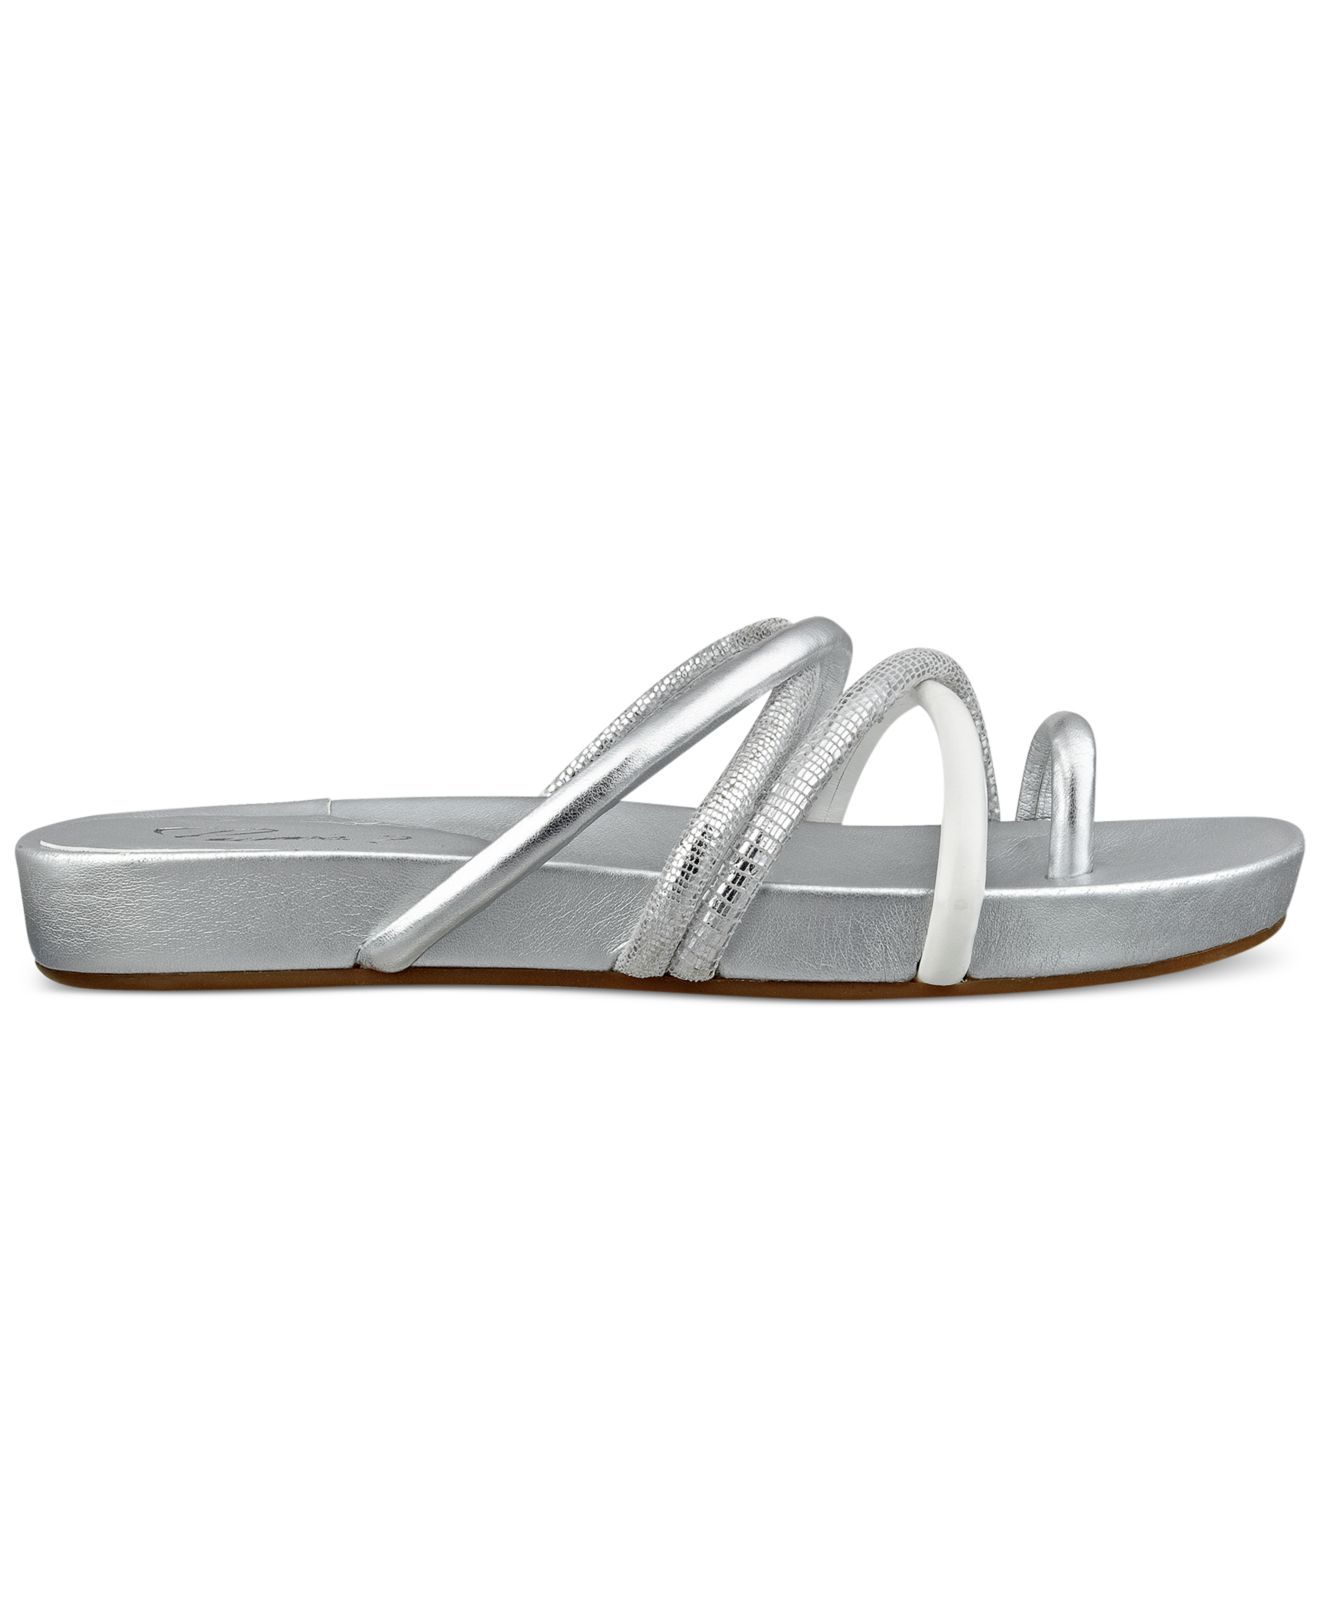 Guess Women's Jiyana Flat Foobed Sandals in Silver | Lyst